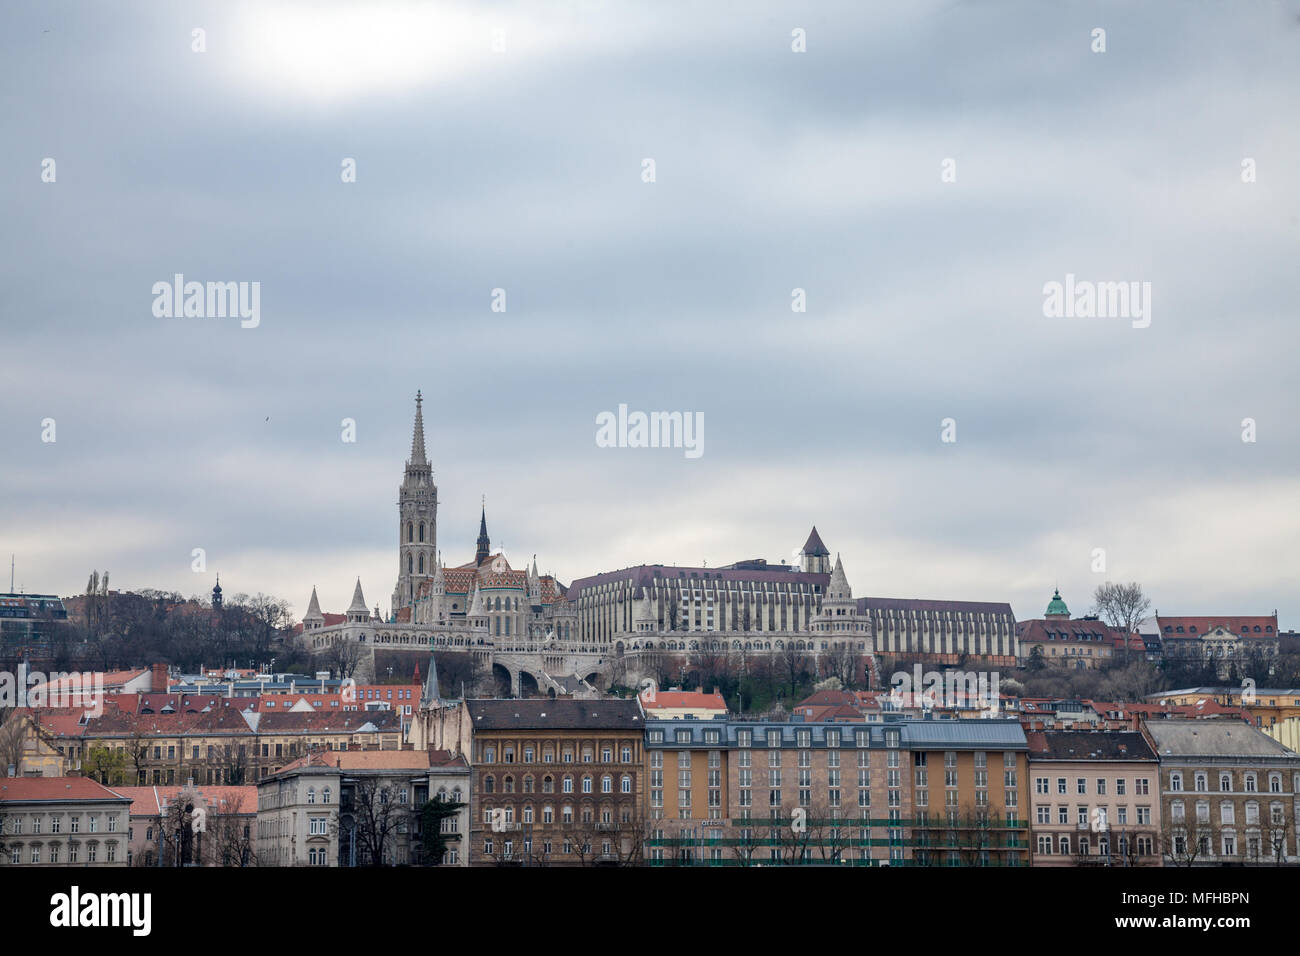 Buda Castle seen from Pest with the Matthias Church in front.  The cast is the historical palace complex of the Hungarian kings   Picture of Buda Cast Stock Photo